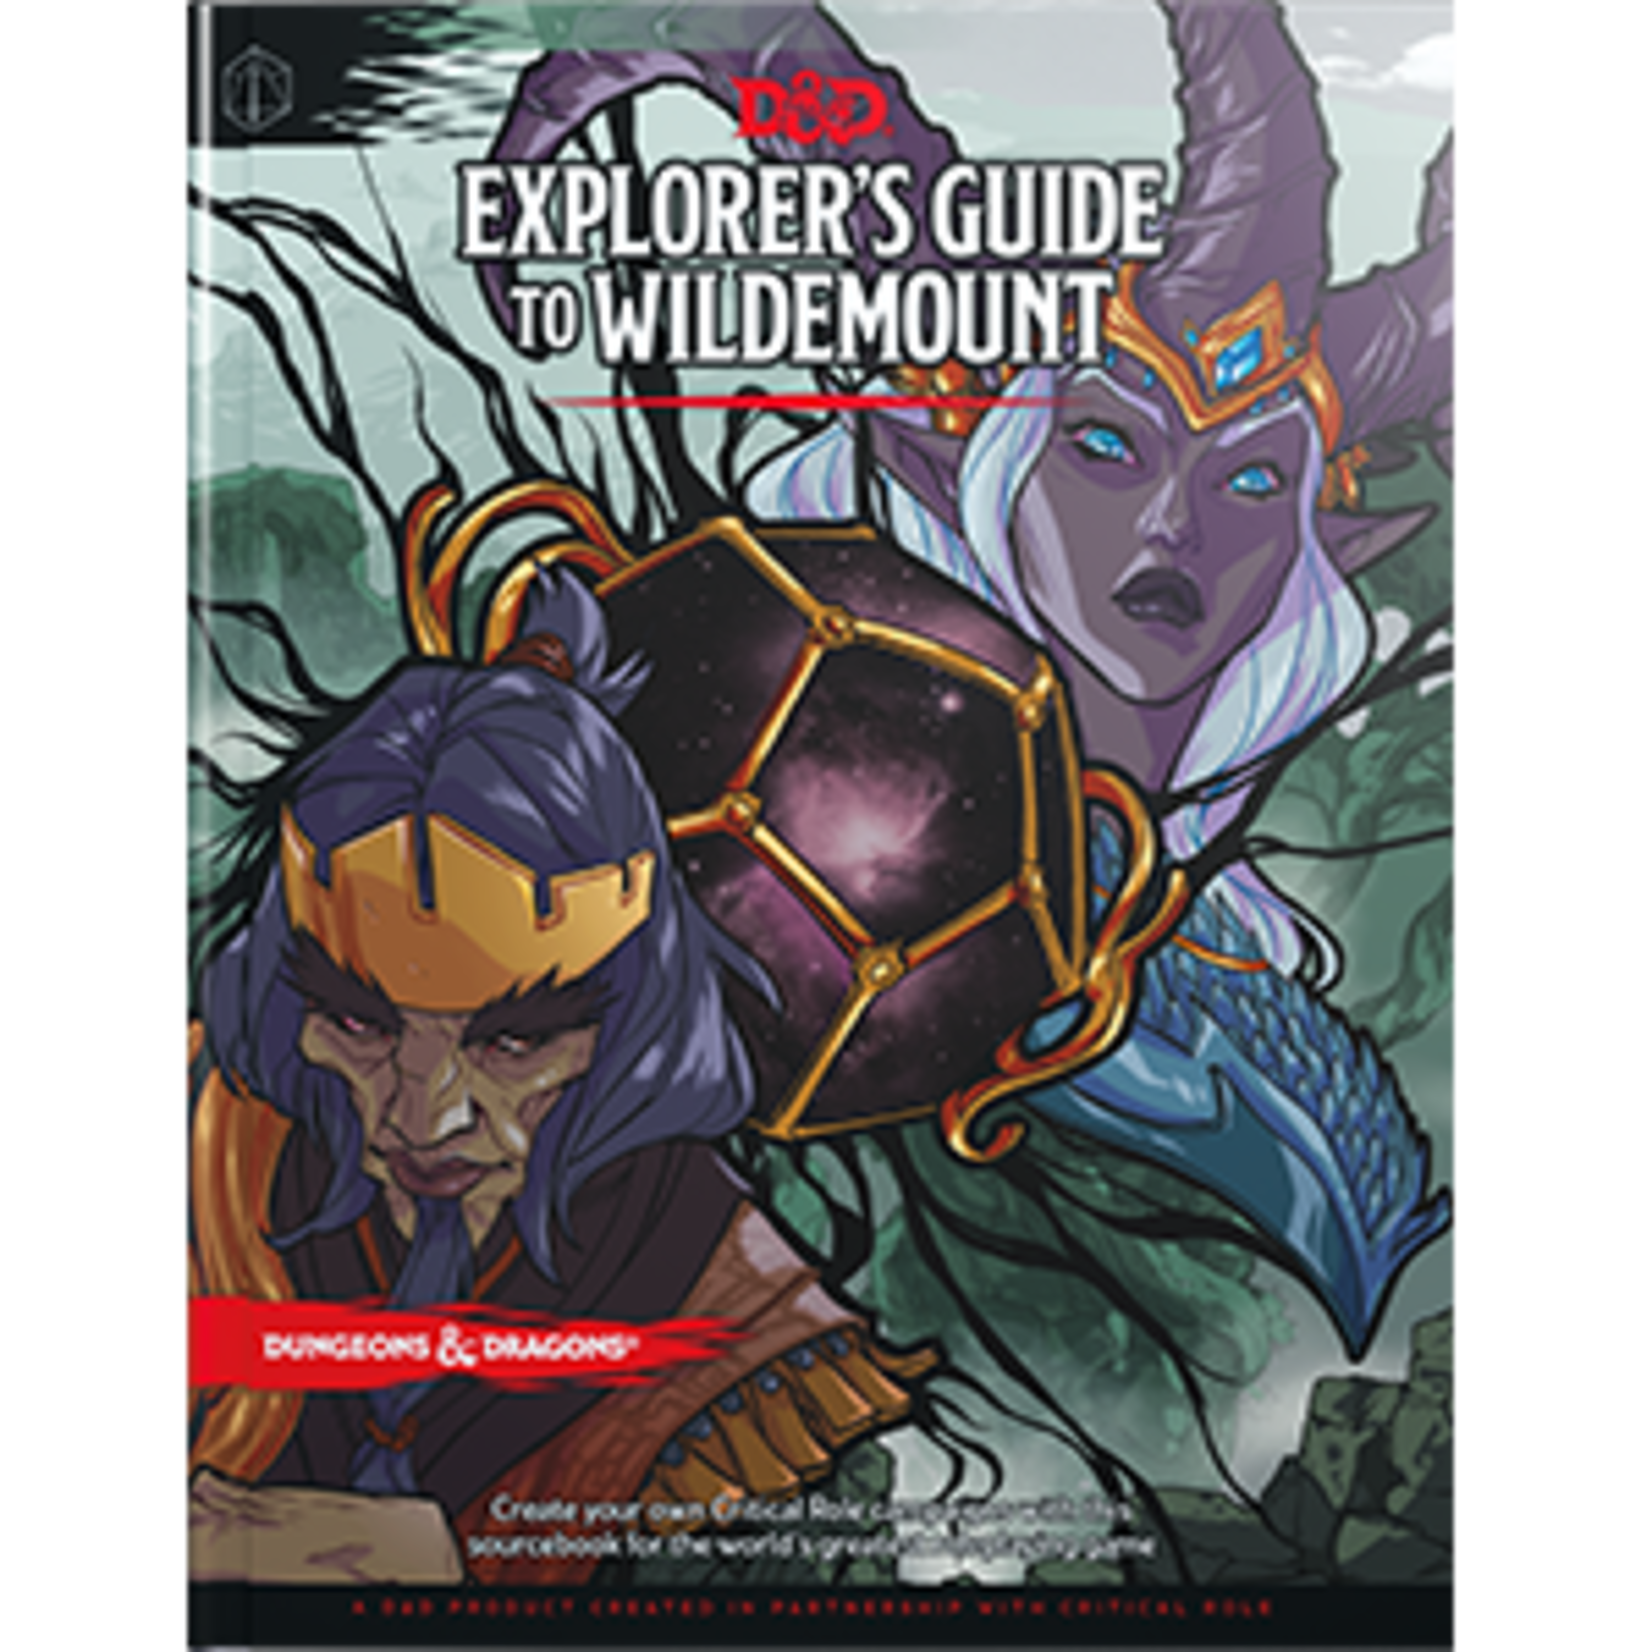 D&D: Explorer's Guide to Wildmount